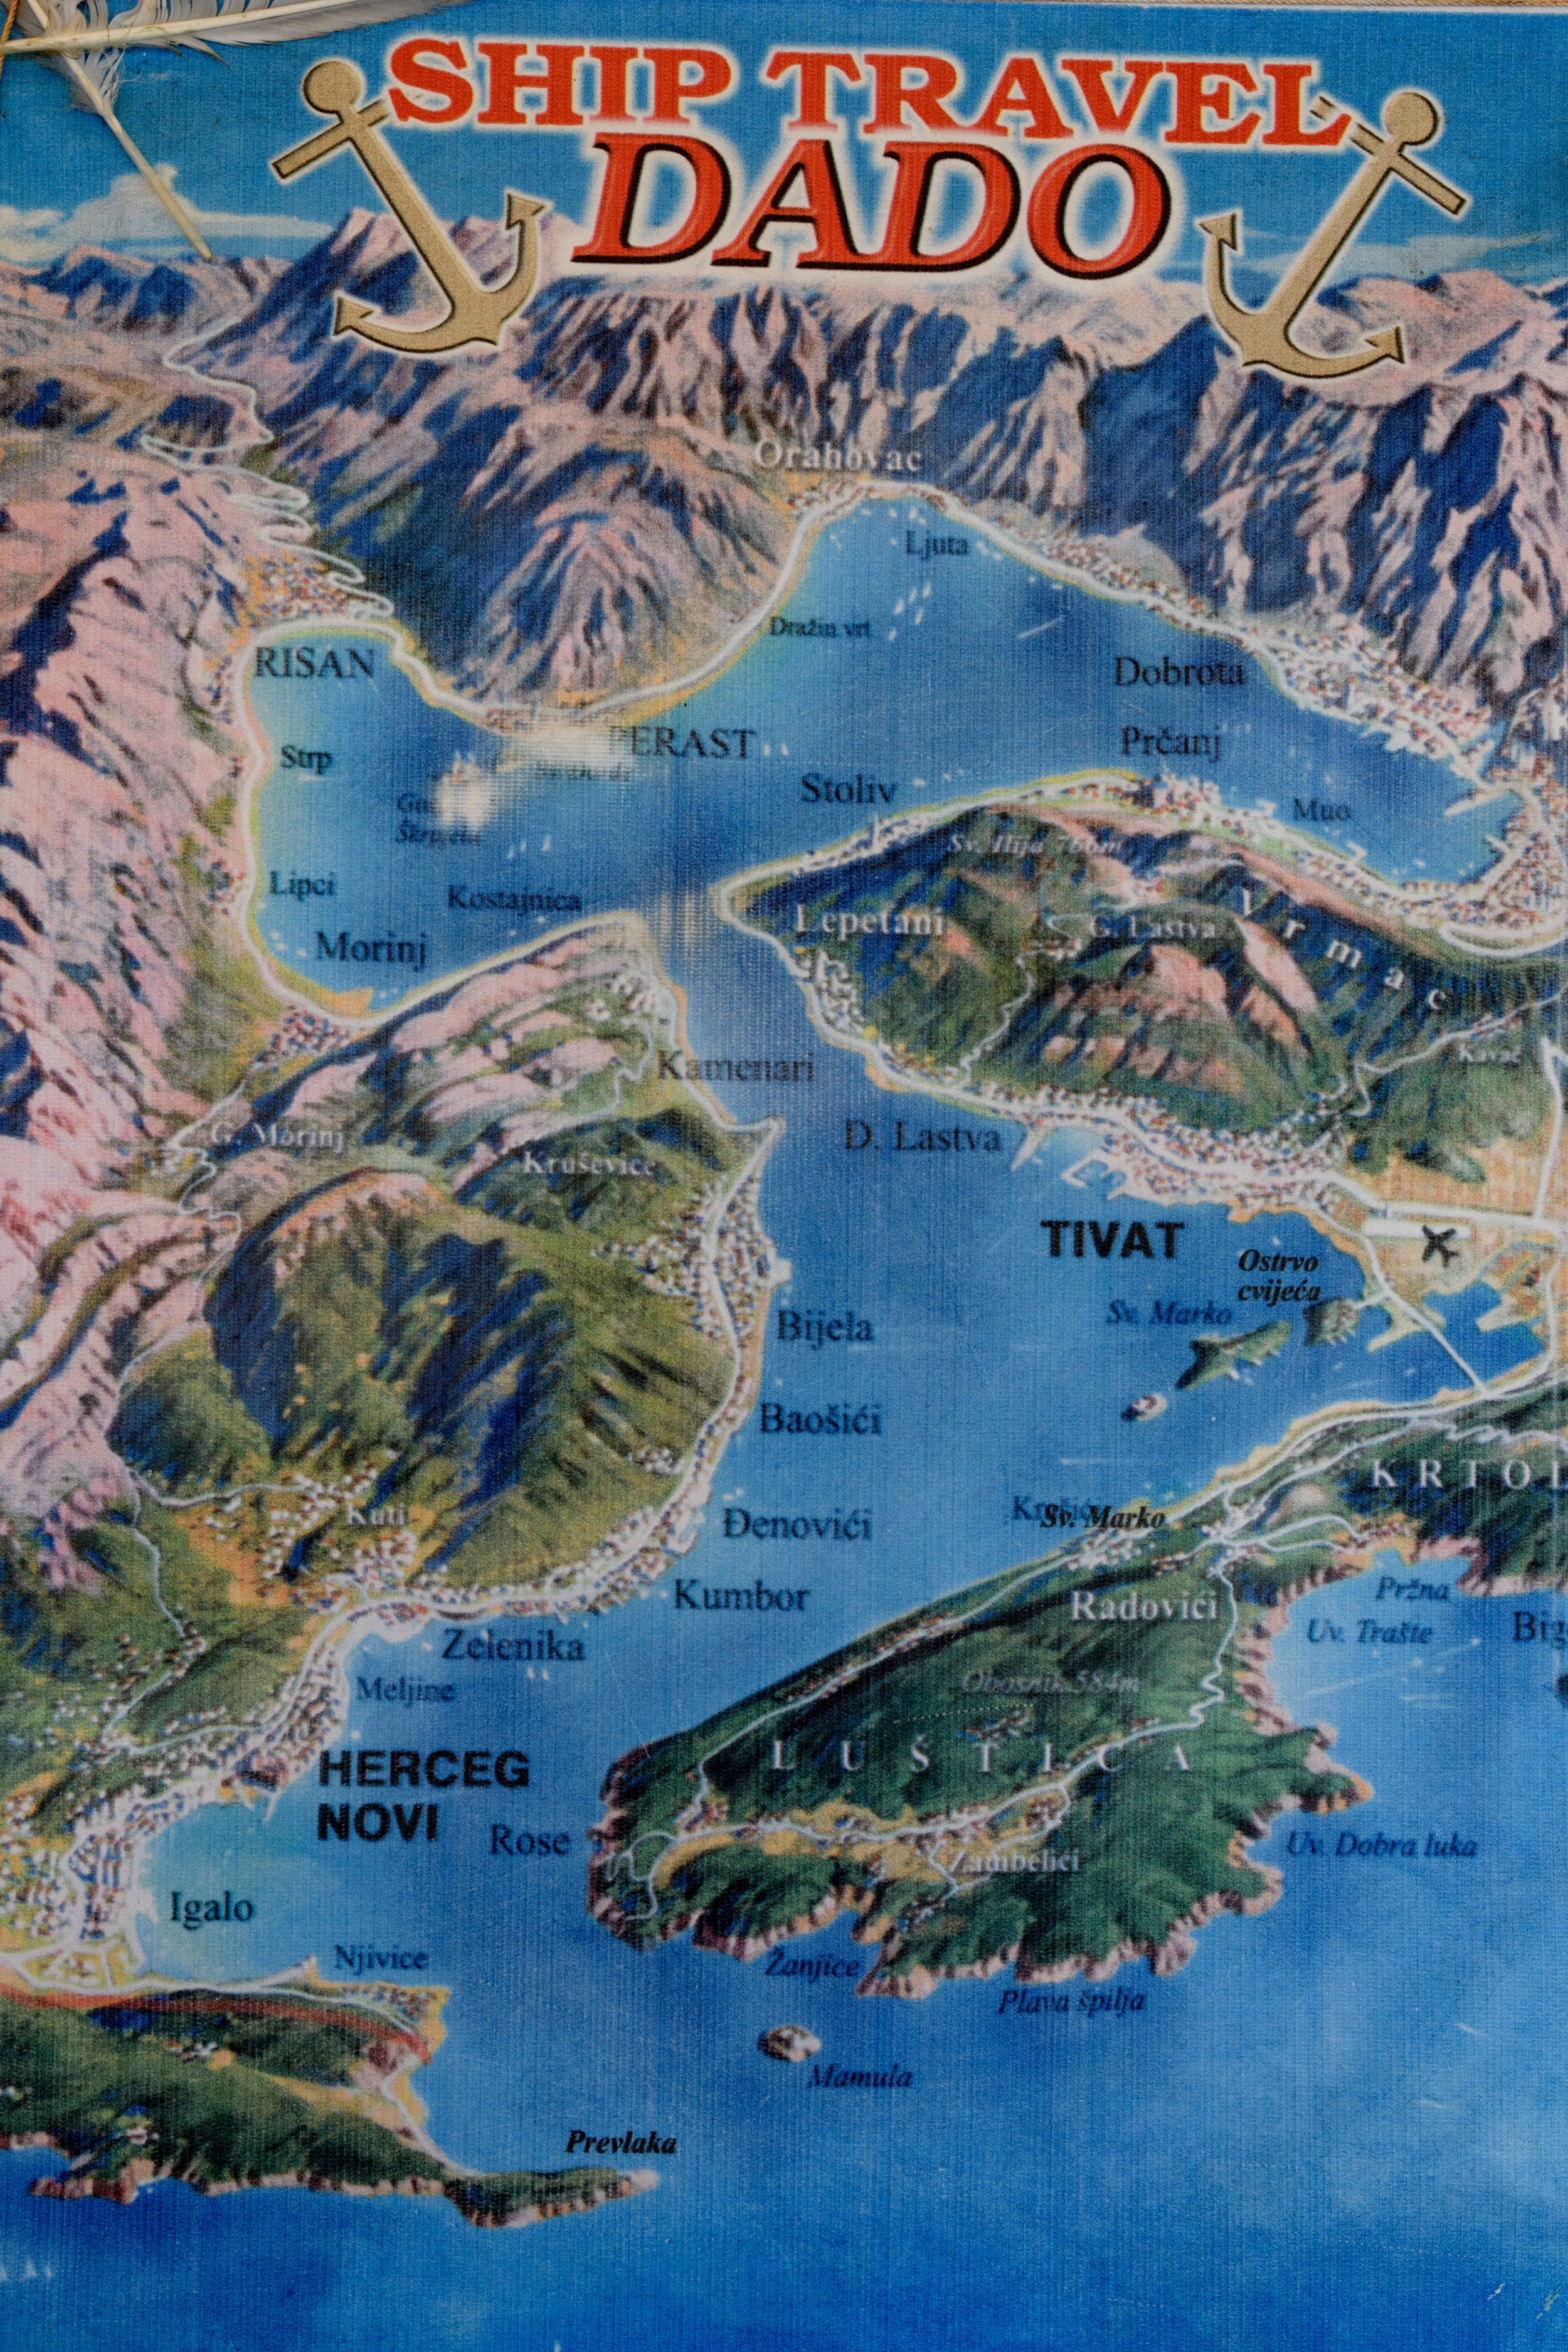 A local map of the narrow, twisting gorges heading into Bay of Kotor, after navigating this safely, you can see why fishermen, and cruise ship captains, would be grateful!